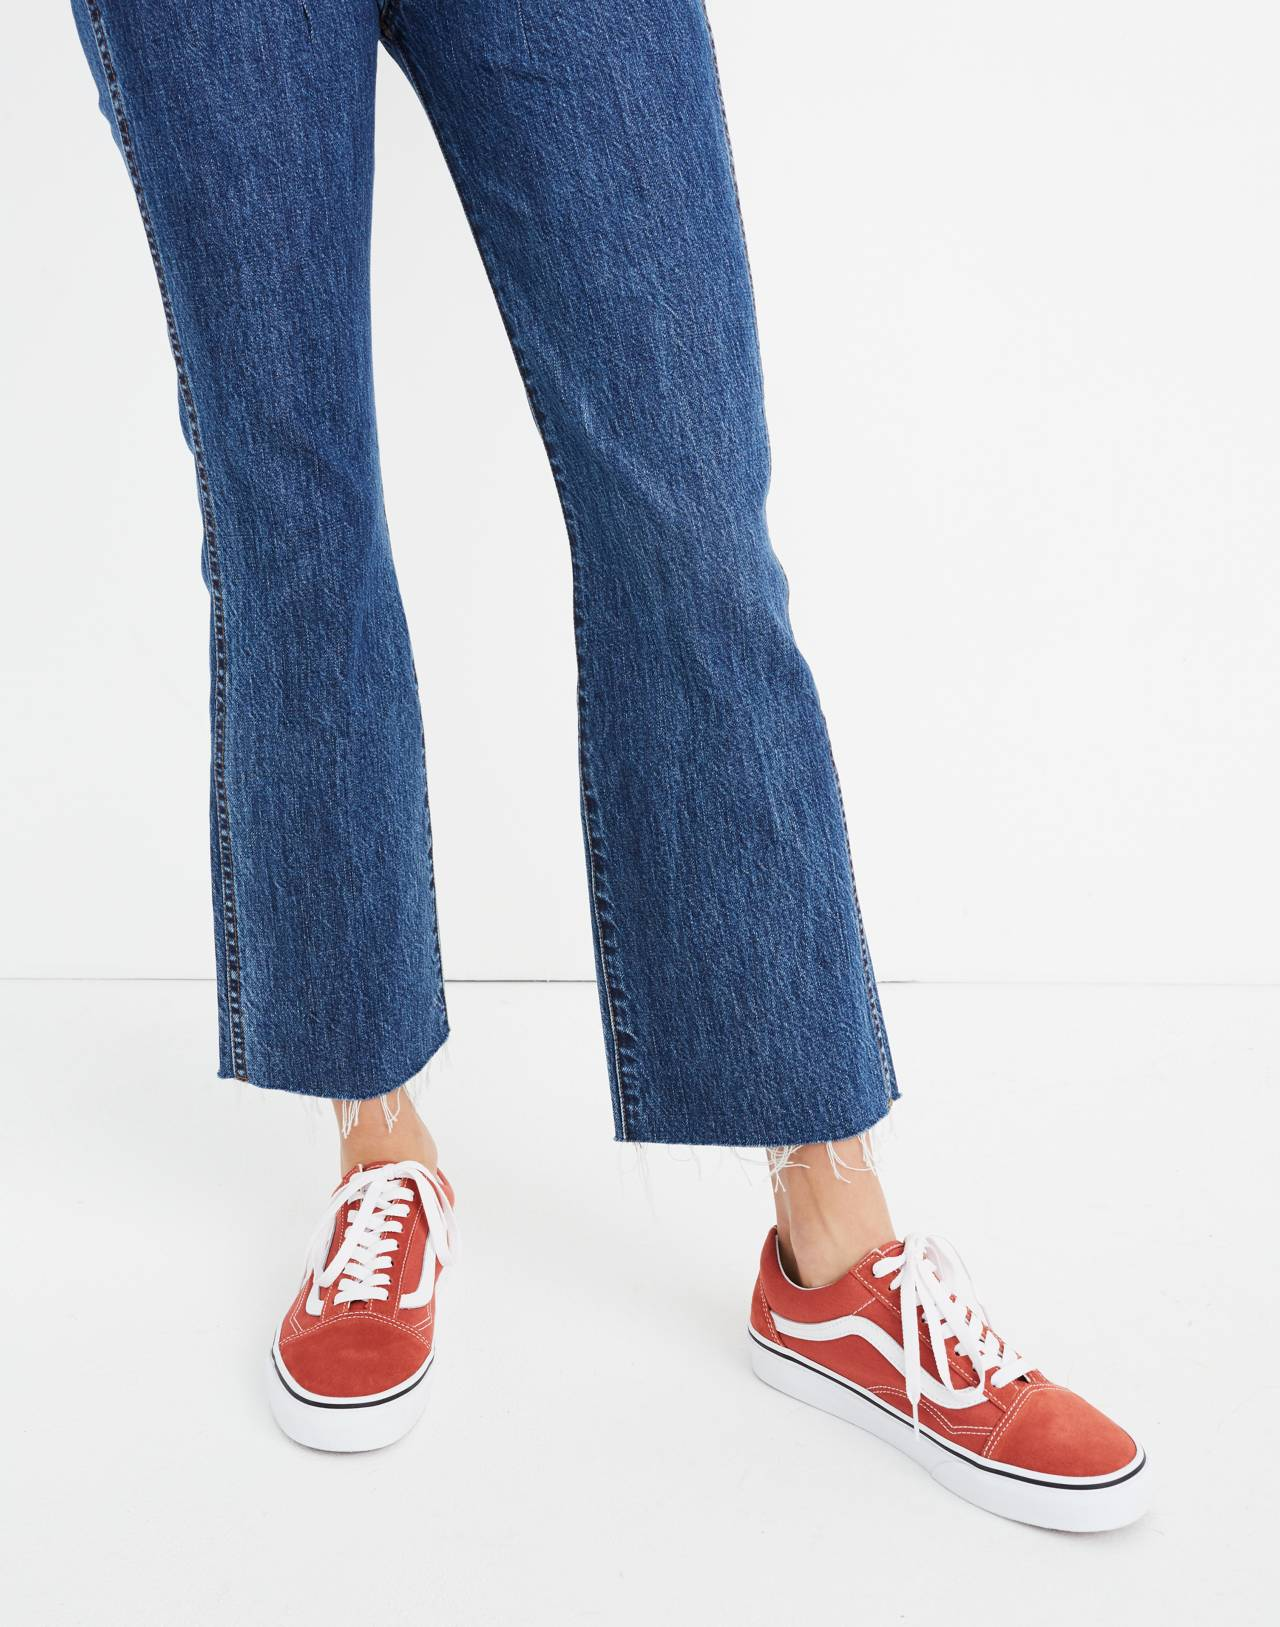 Tall Rigid Demi-Boot Crop Jeans in MacGill Wash in macgill wash image 3